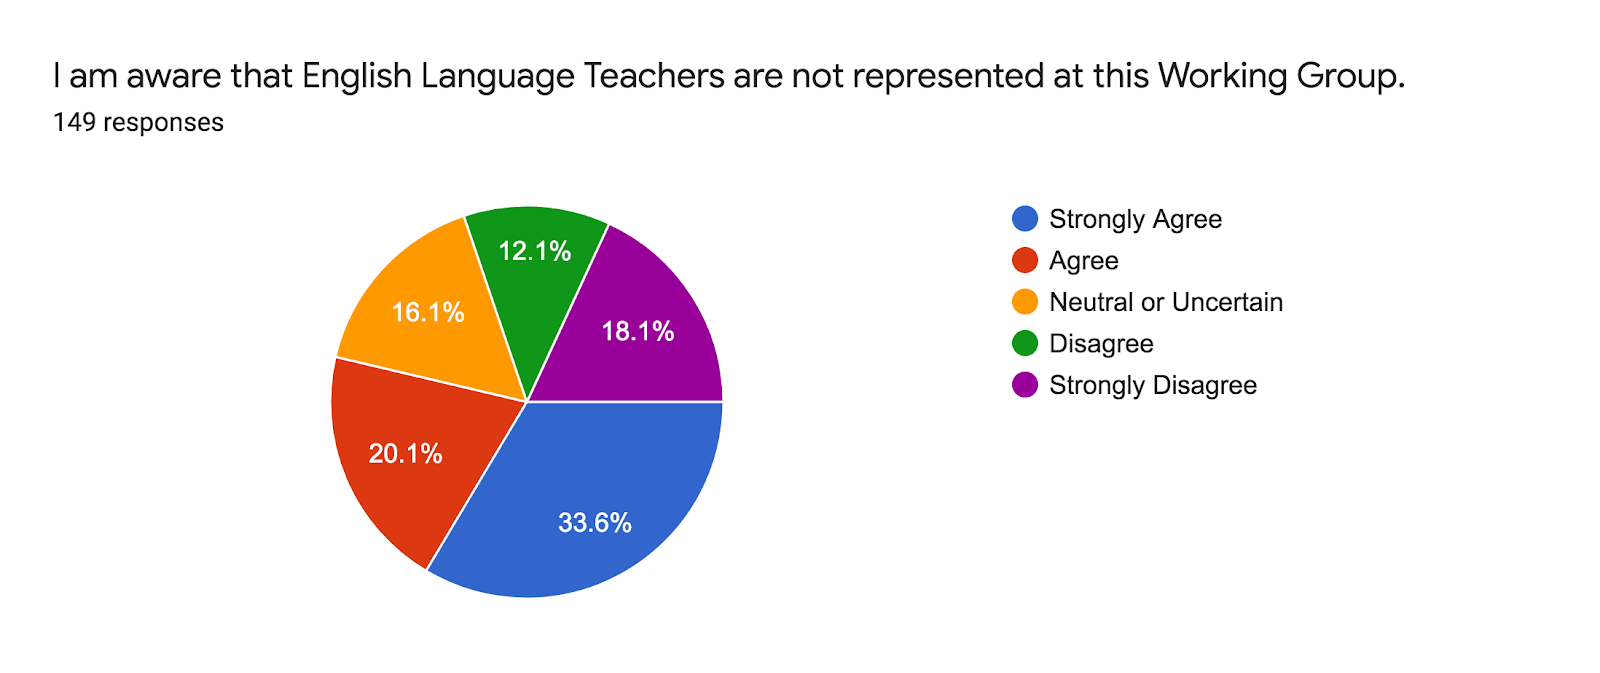 Forms response chart. Question title: I am aware that English Language Teachers are not represented at this Working Group.. Number of responses: 149 responses.